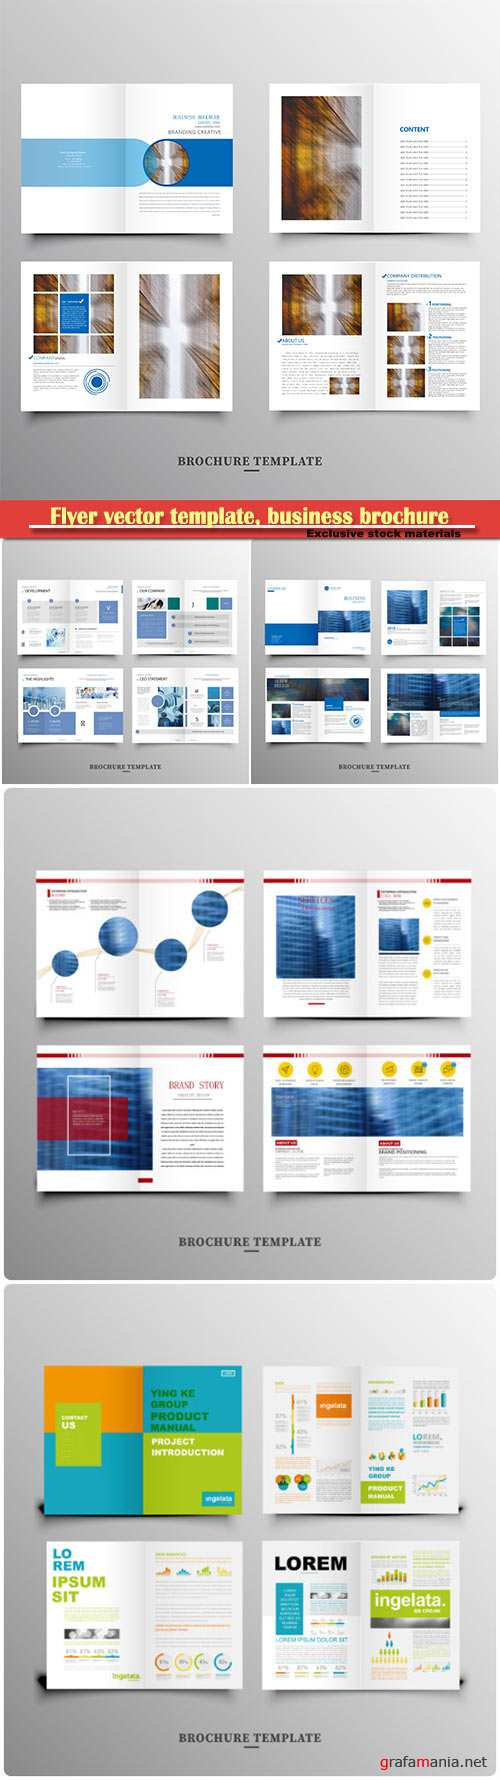 Flyer vector template, business brochure, magazine cover # 23